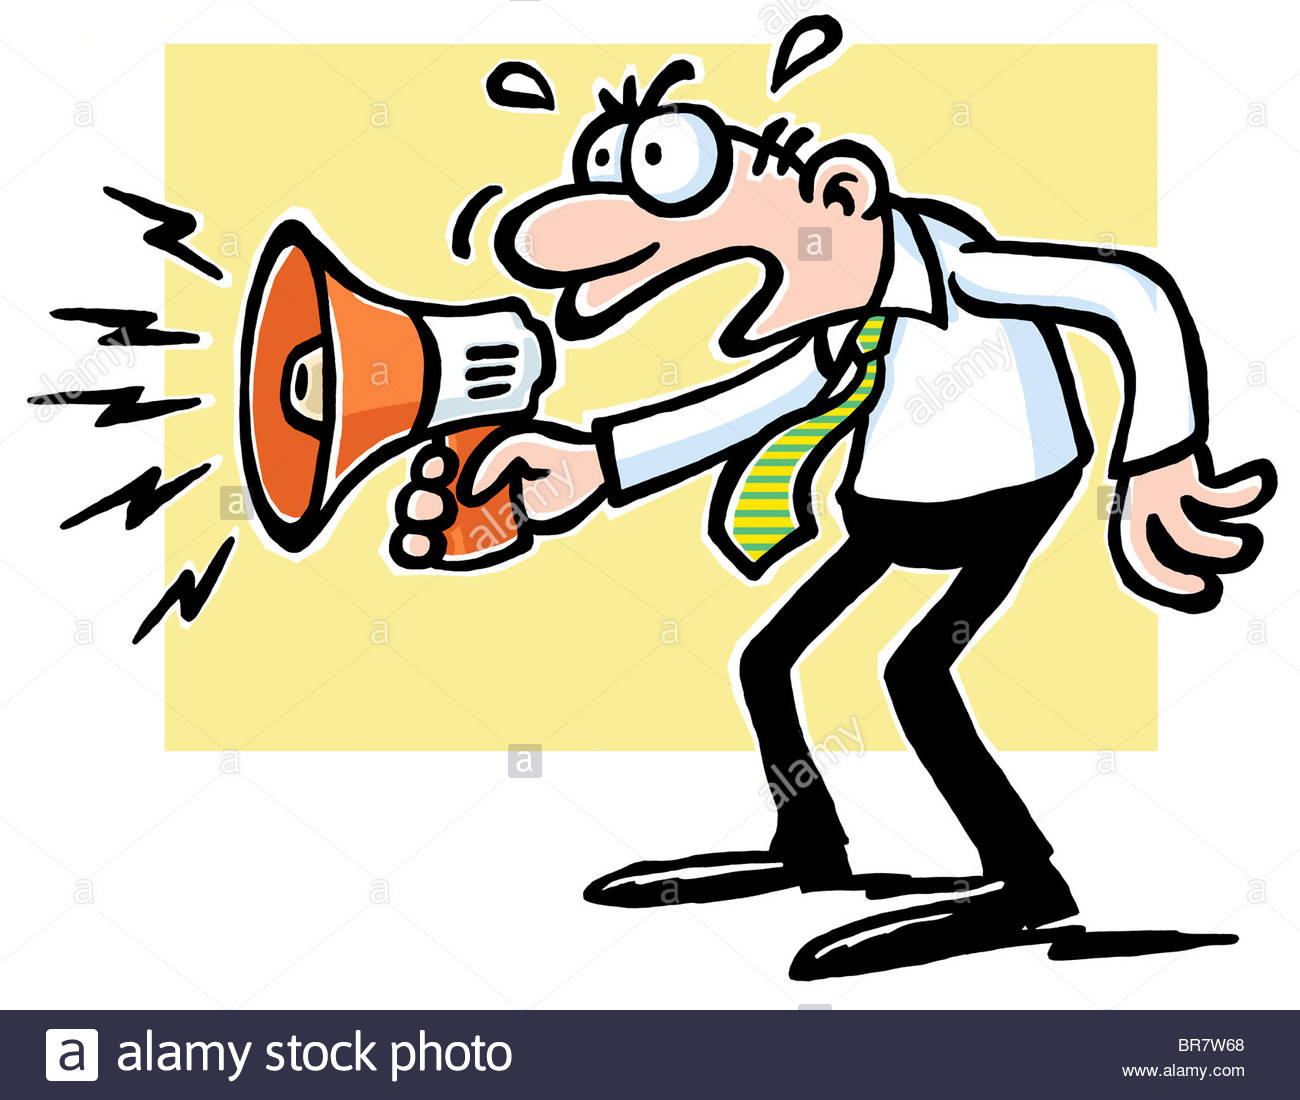 1300x1100 A Cartoon Drawing Of A Man Yelling Into A Megaphone Stock Photo